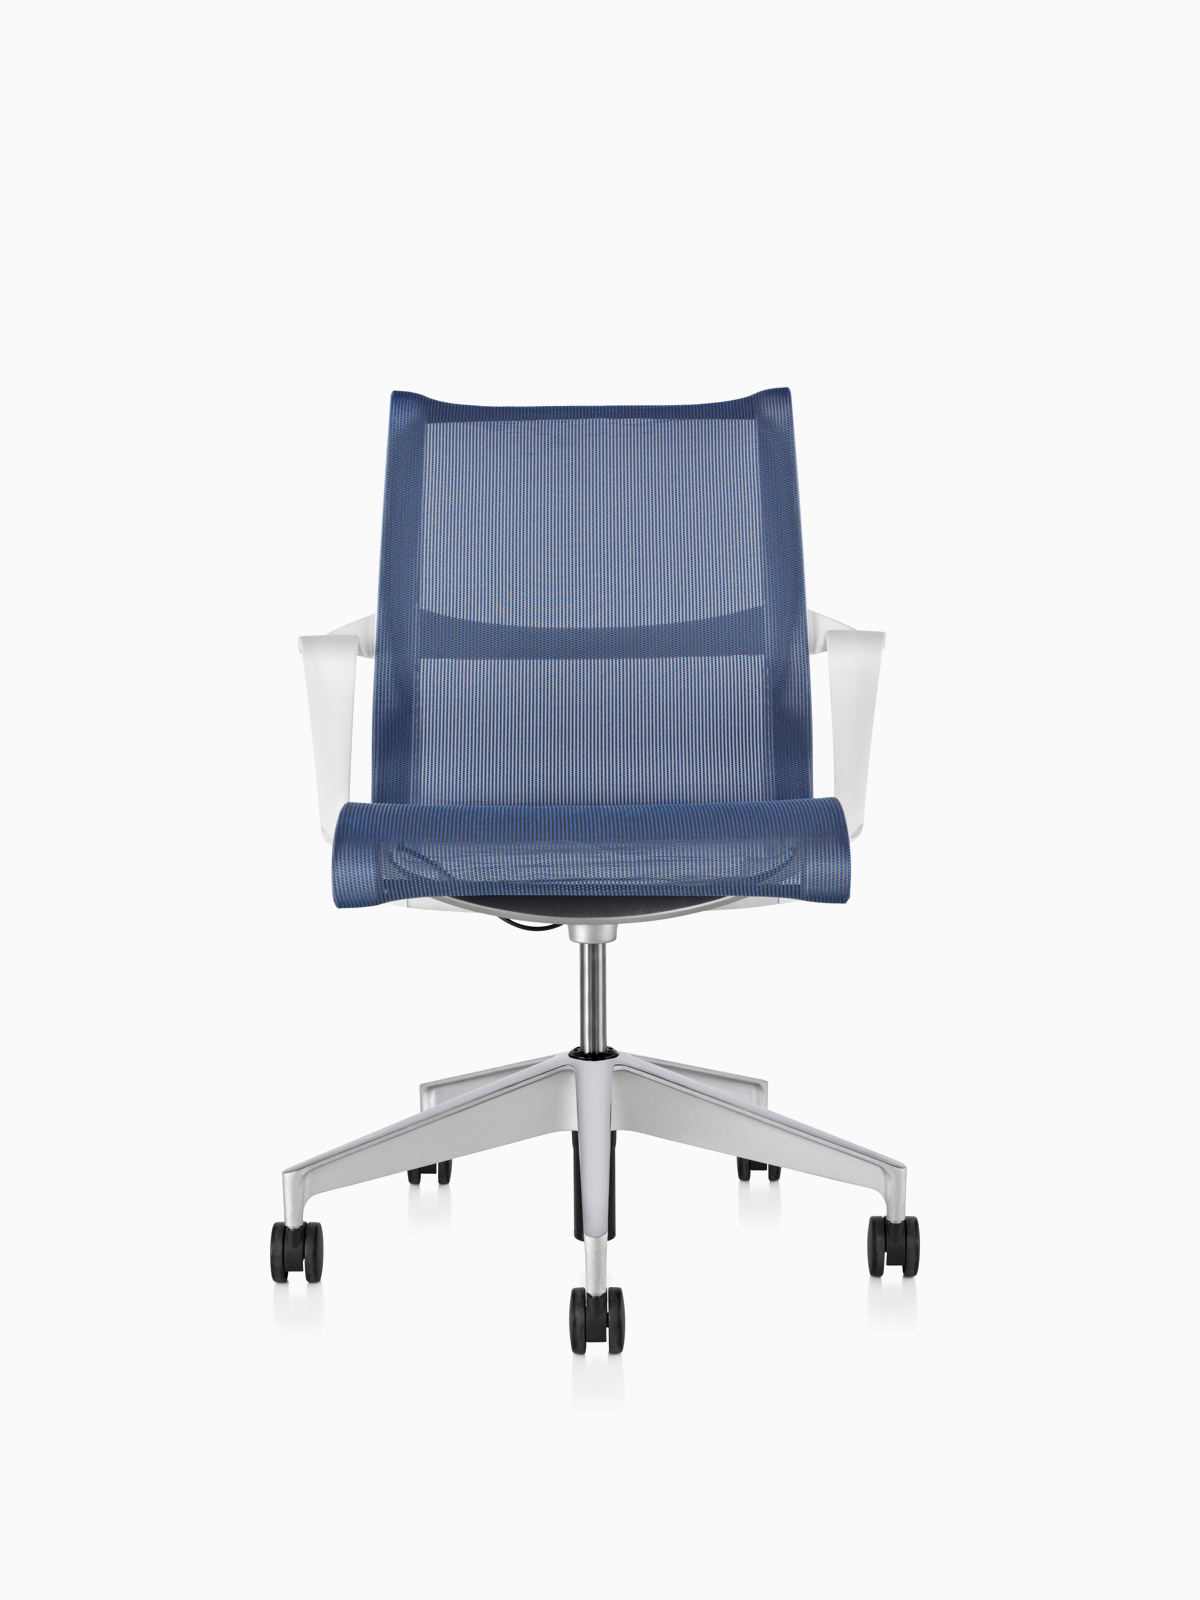 Blue Setu office chair, viewed from the front.